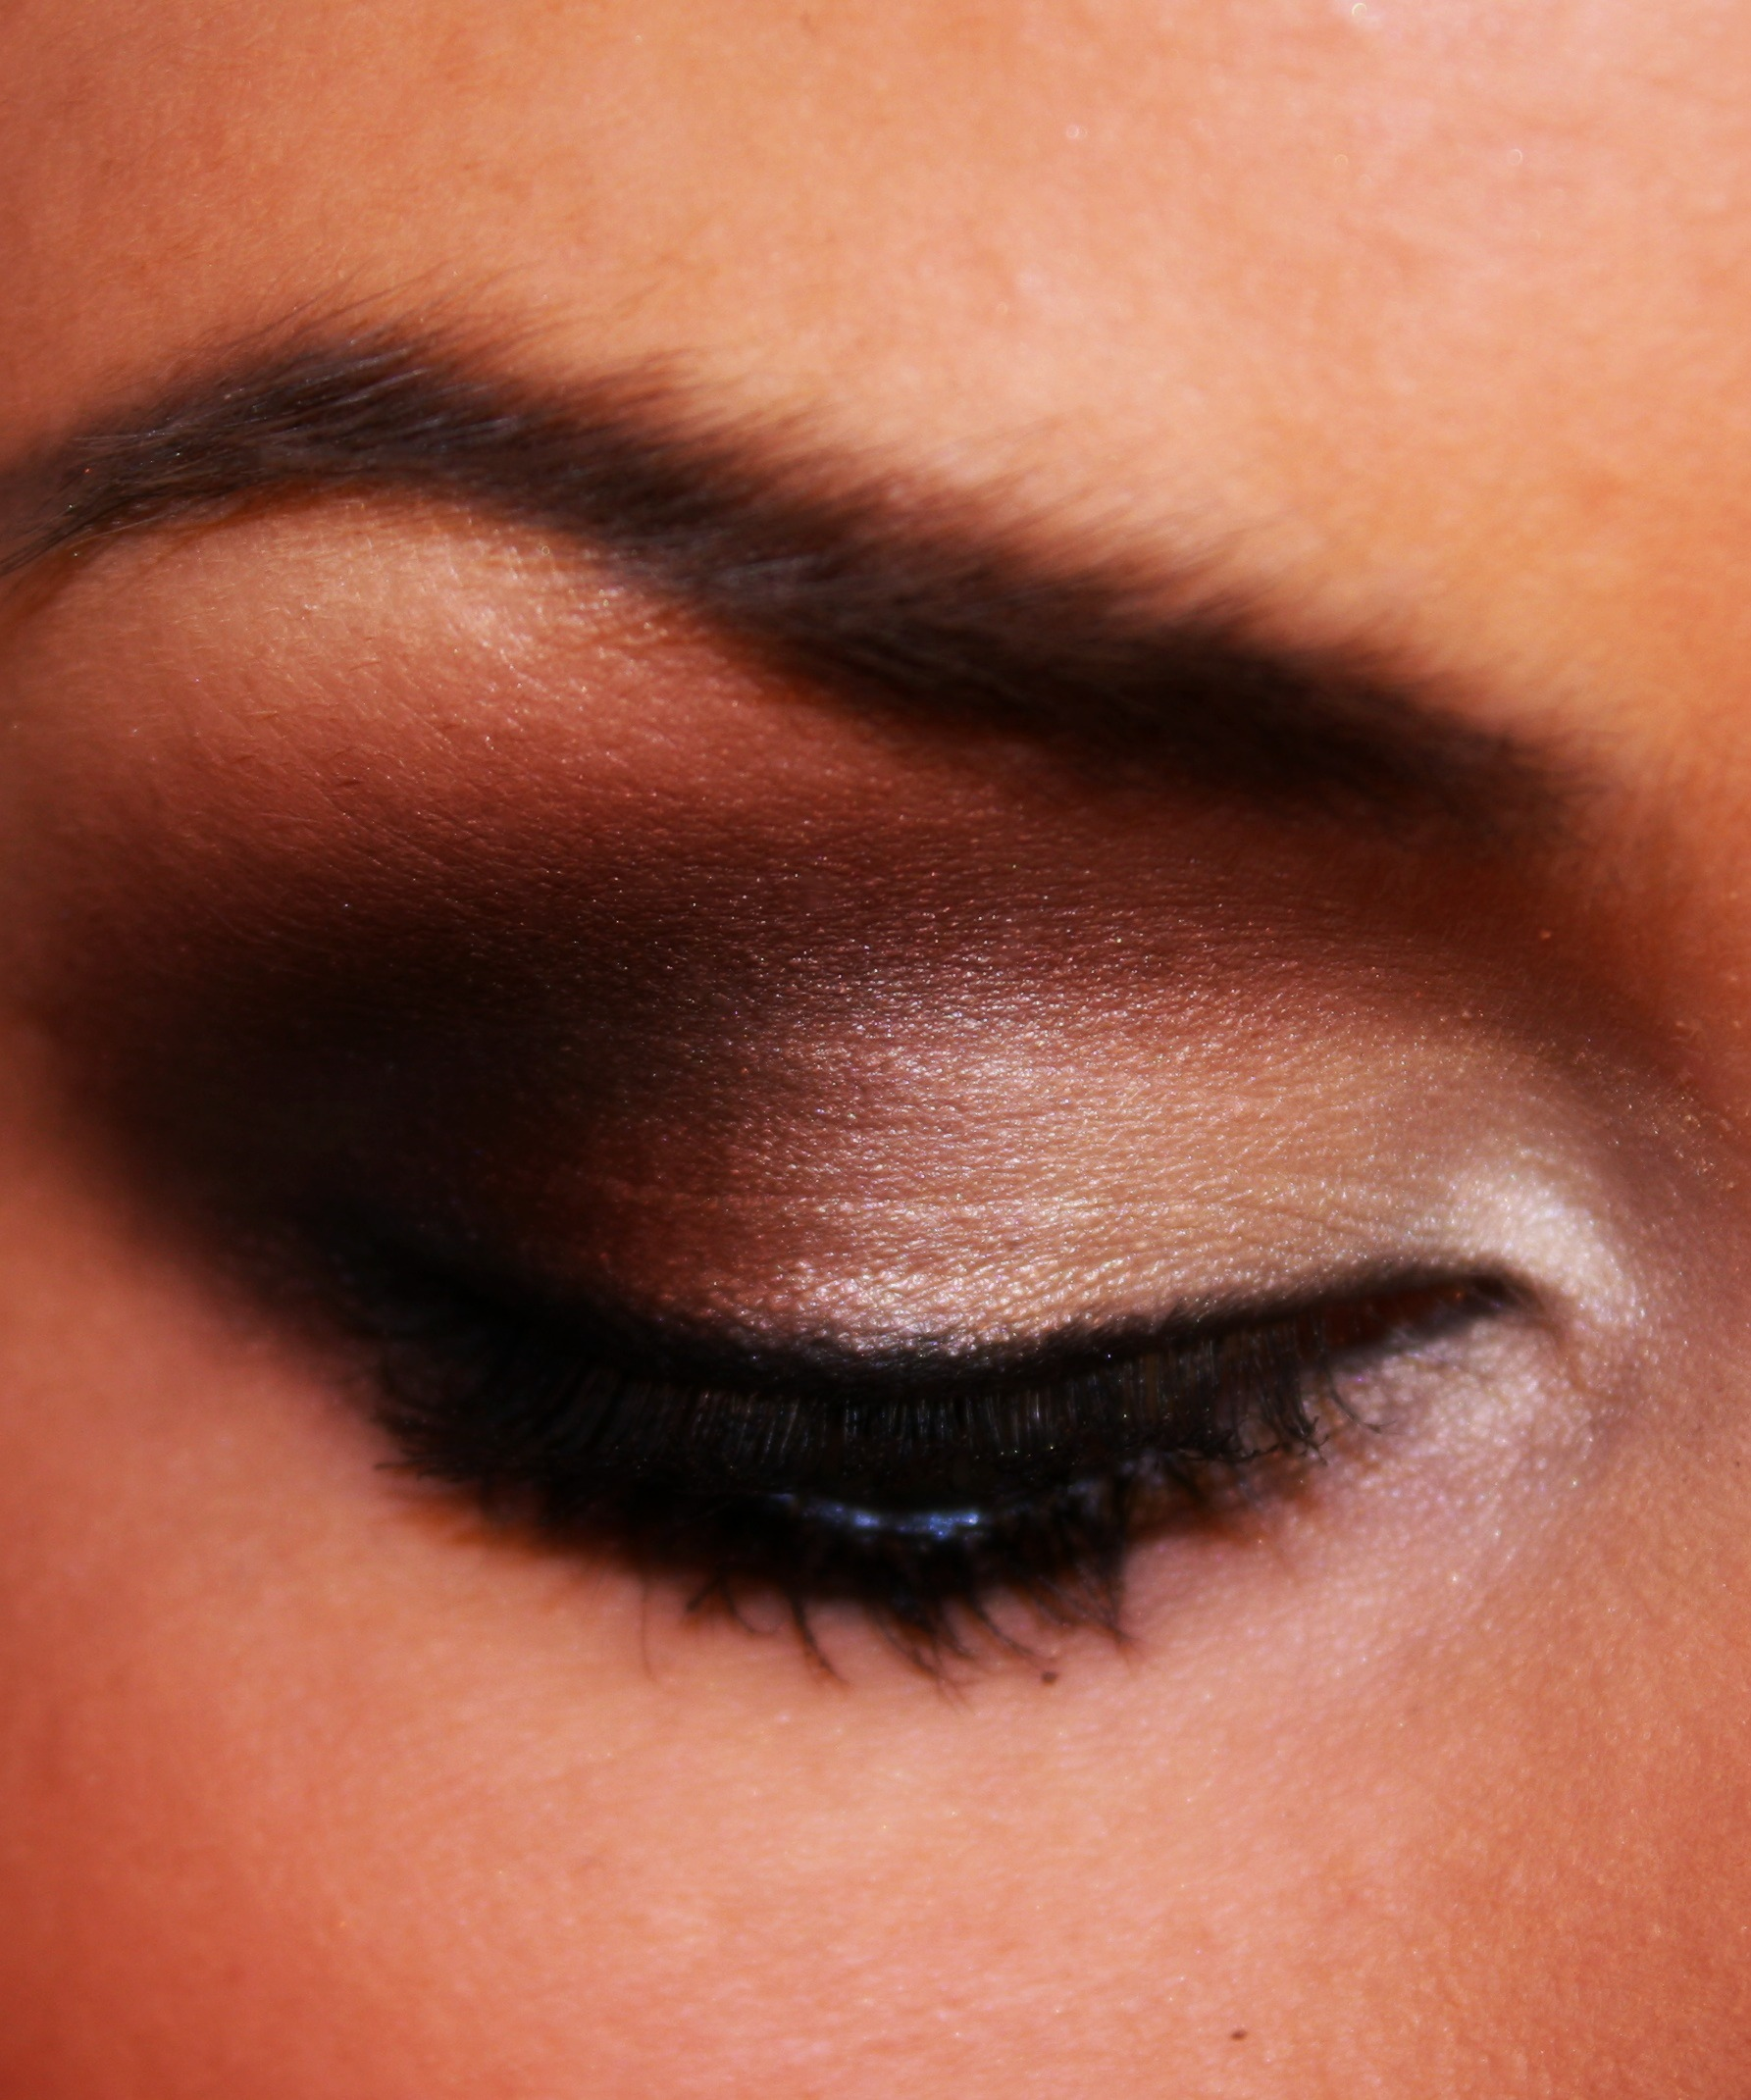 12 Tips for Eye Makeup Safety